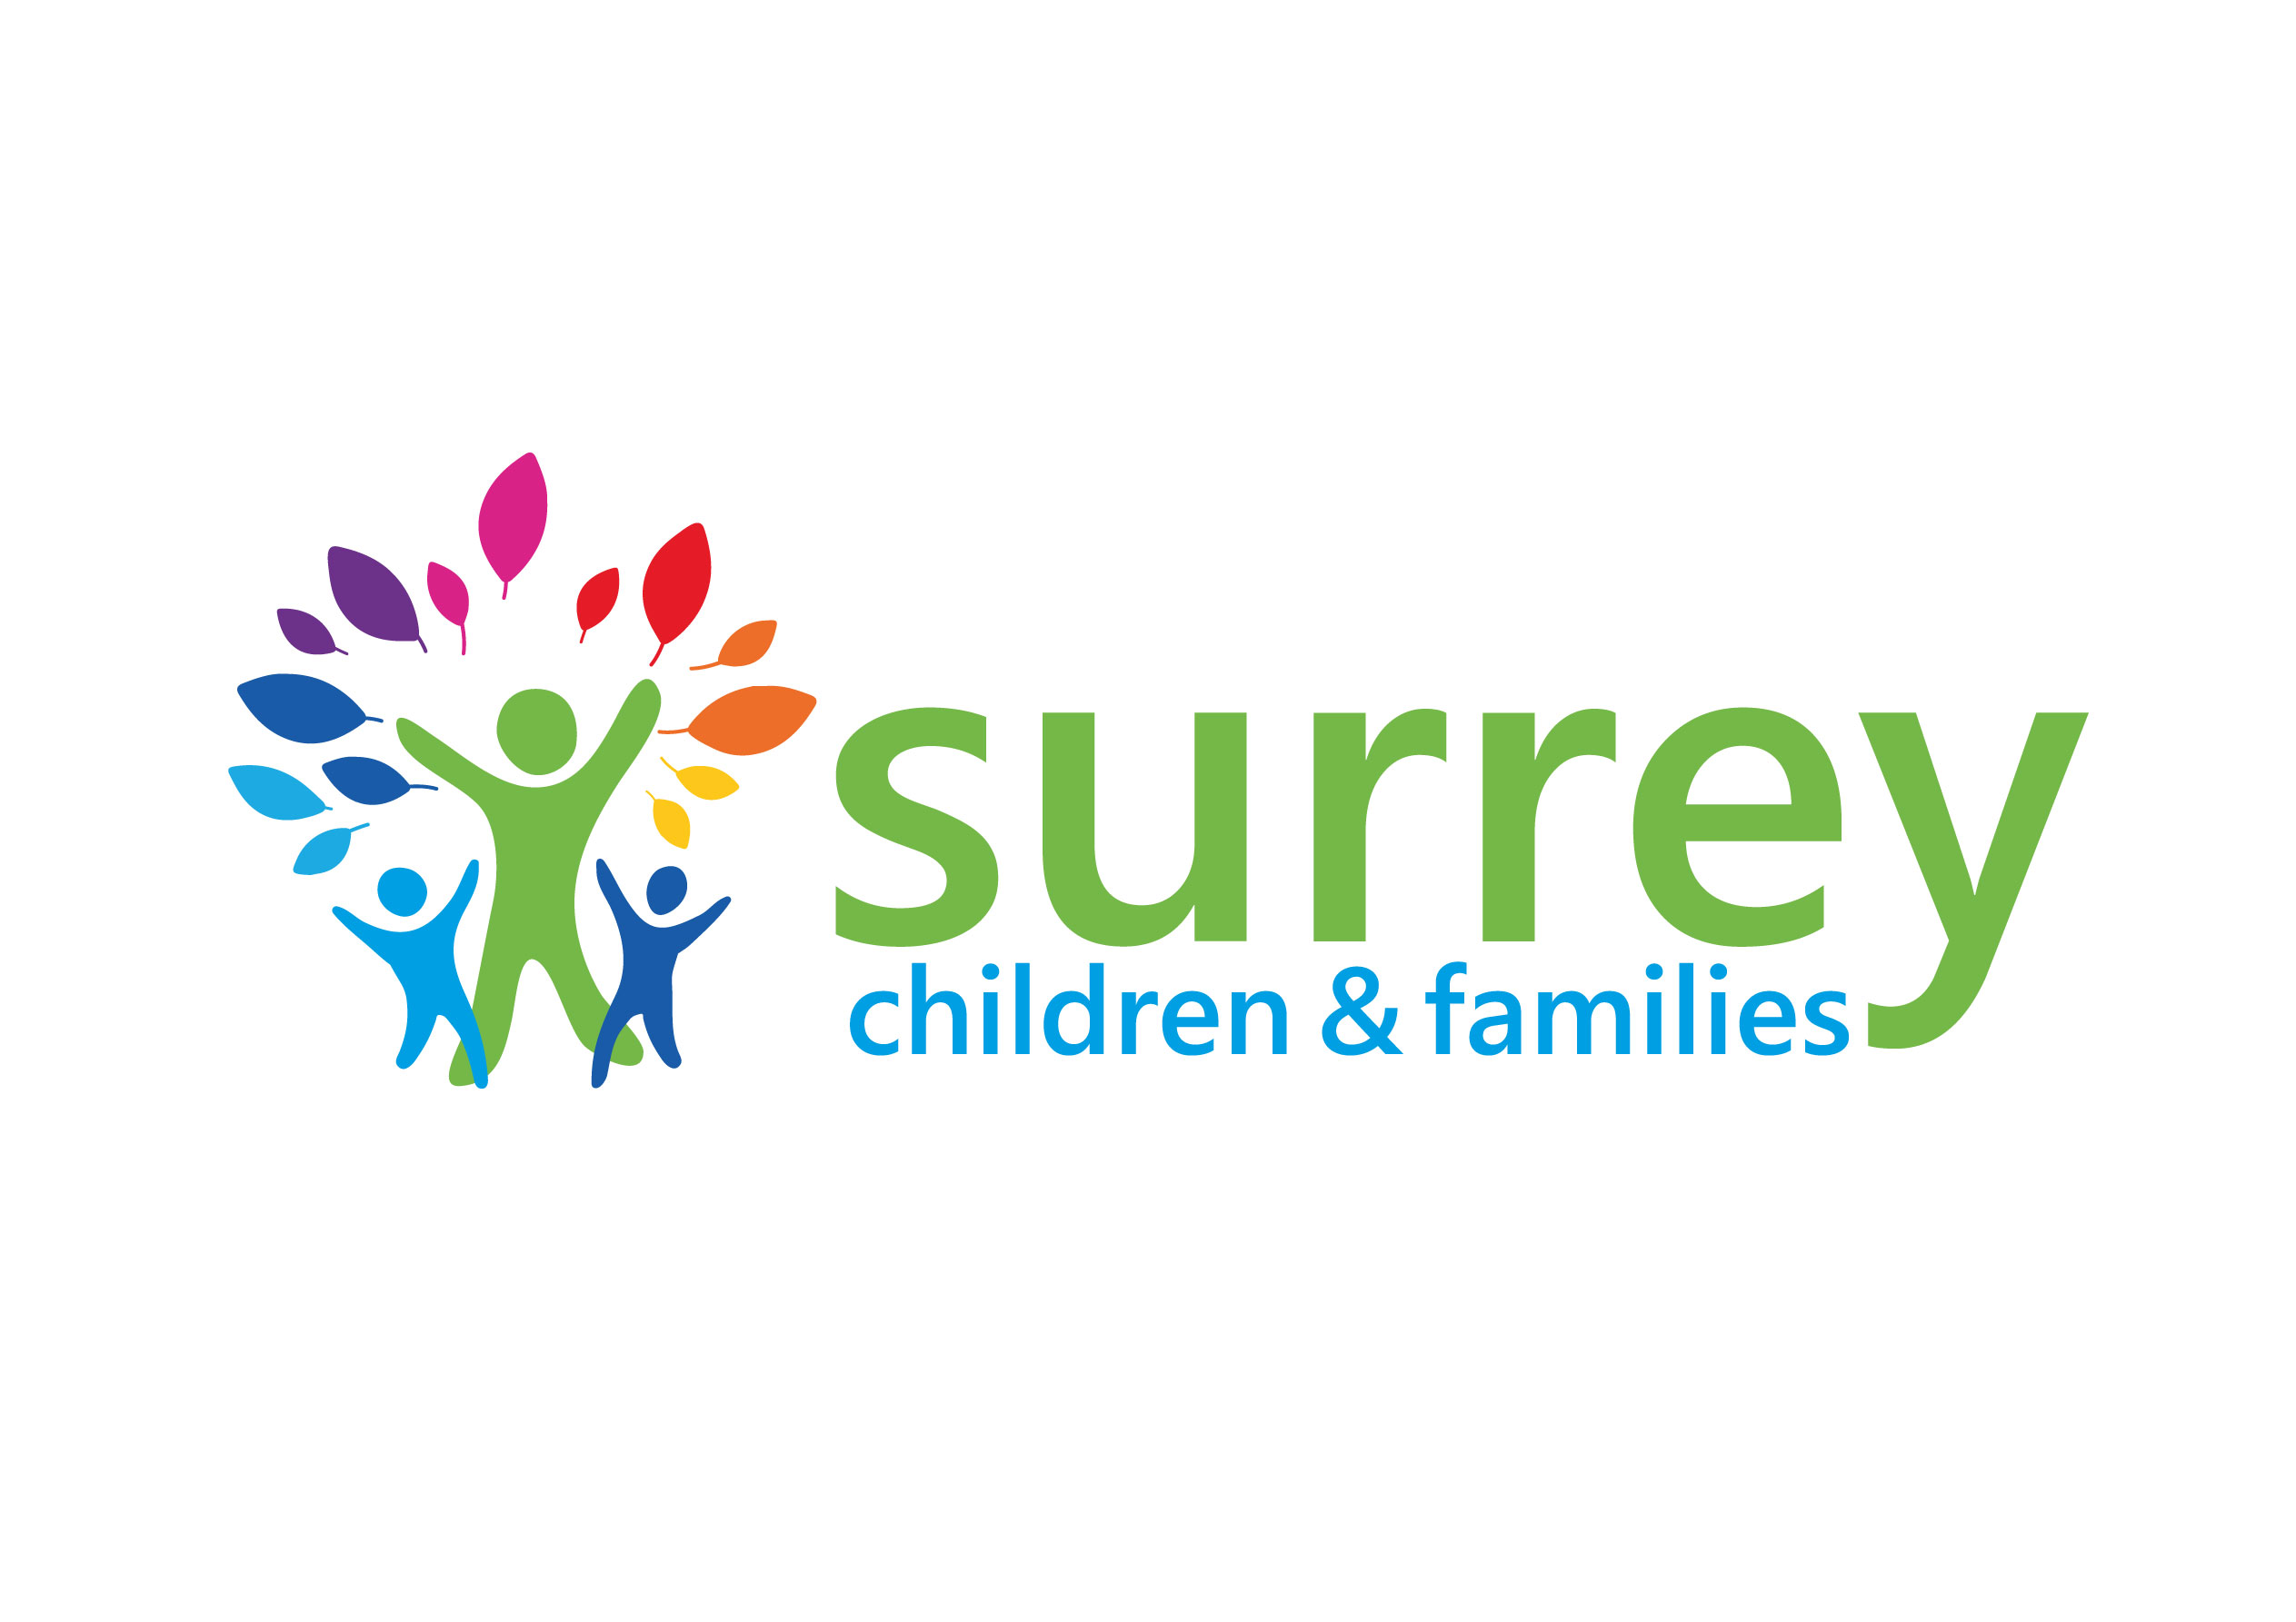 Surrey Children & Families logo